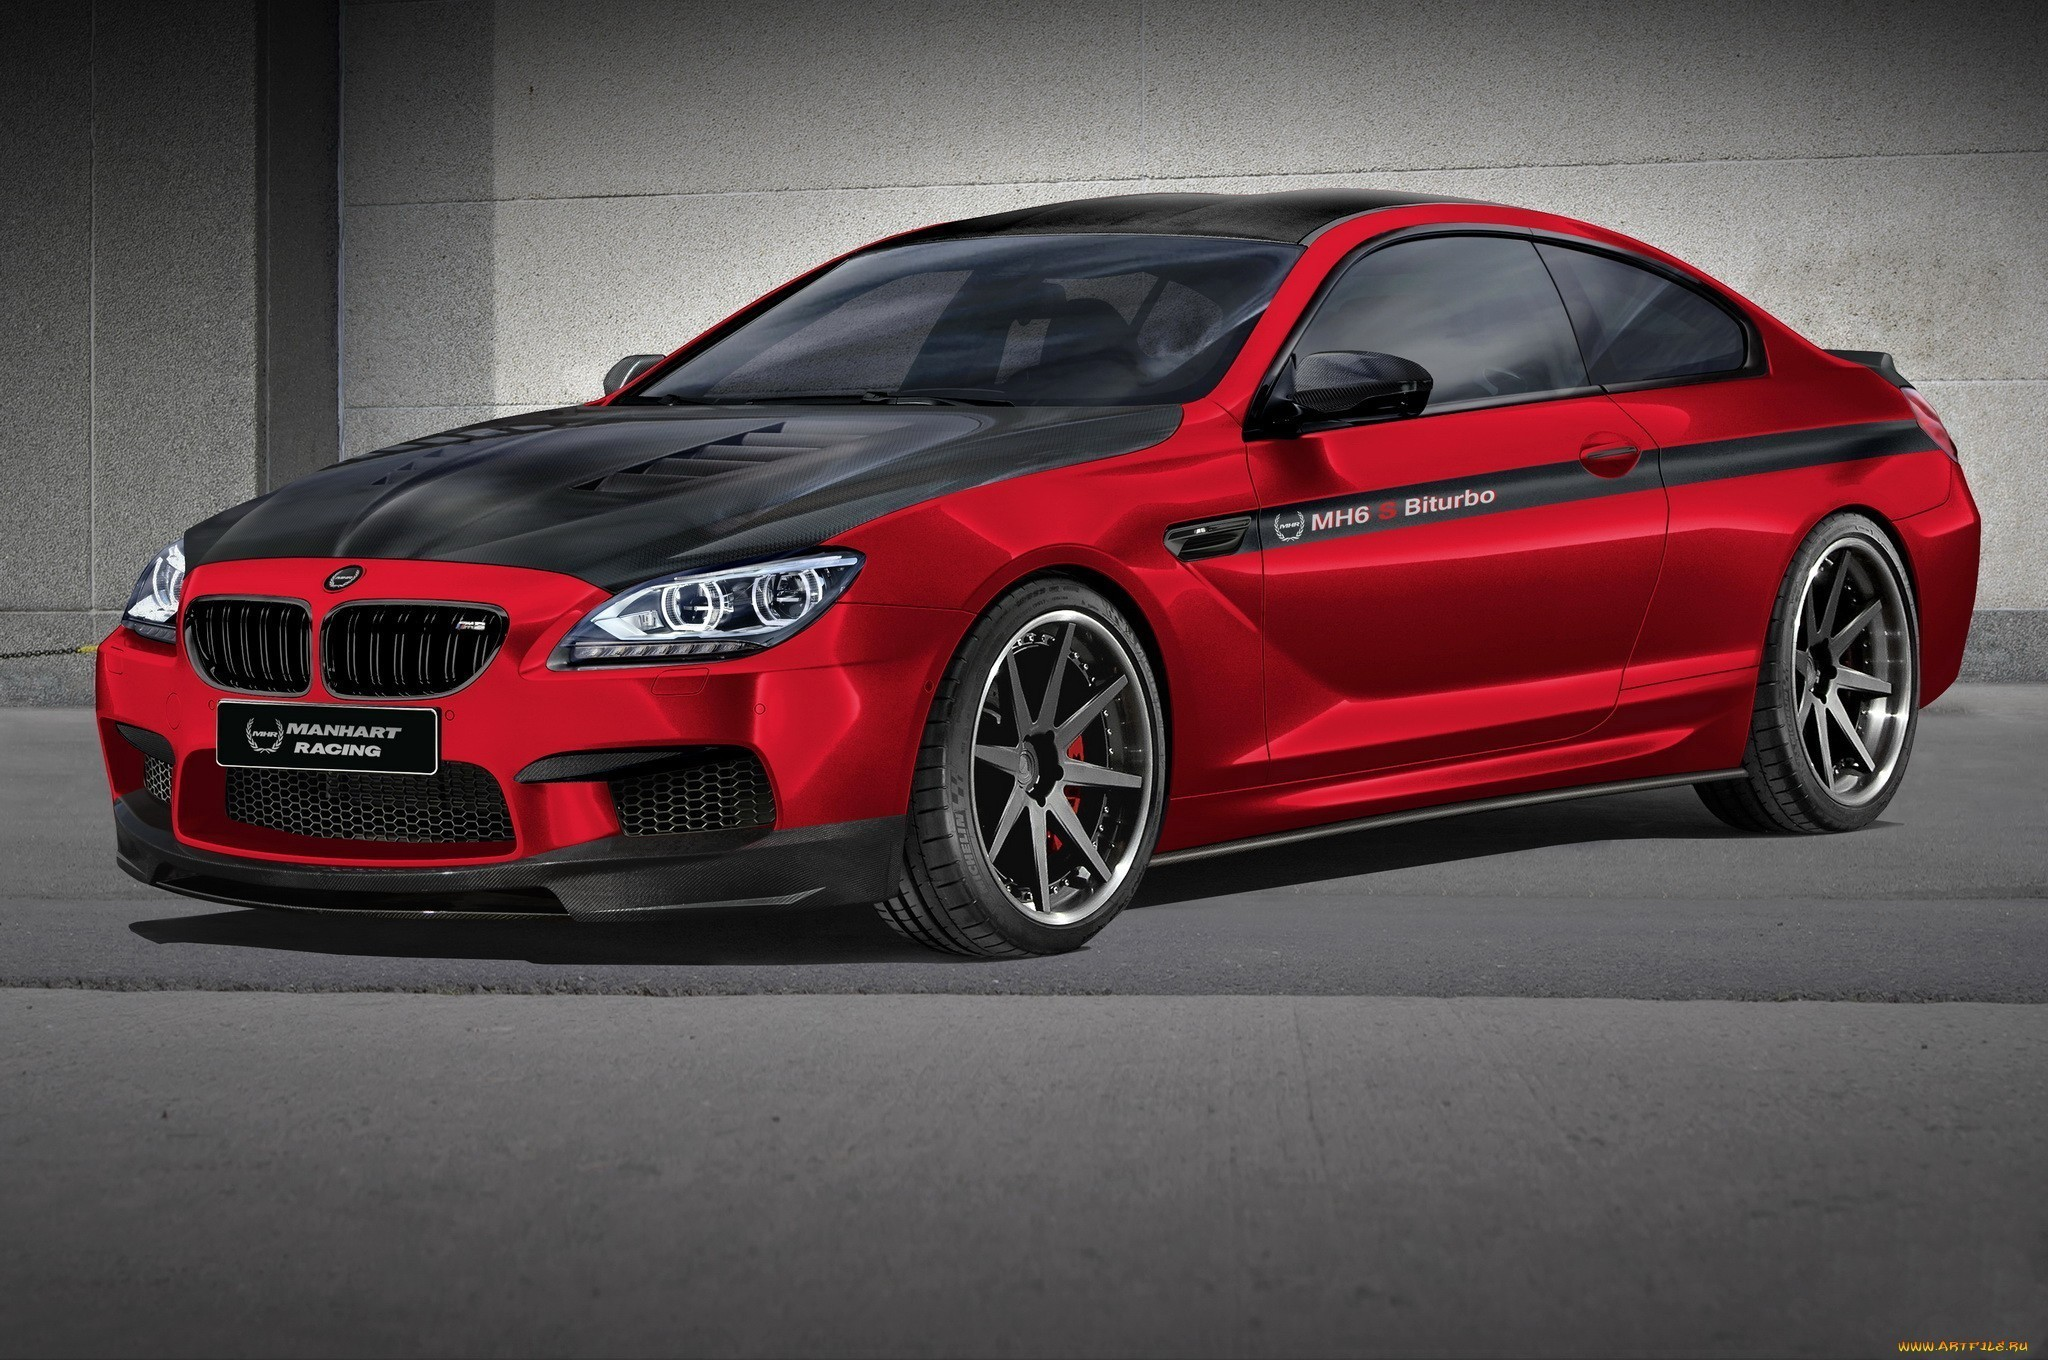 2048x1360 Bmw red cars wallpaper